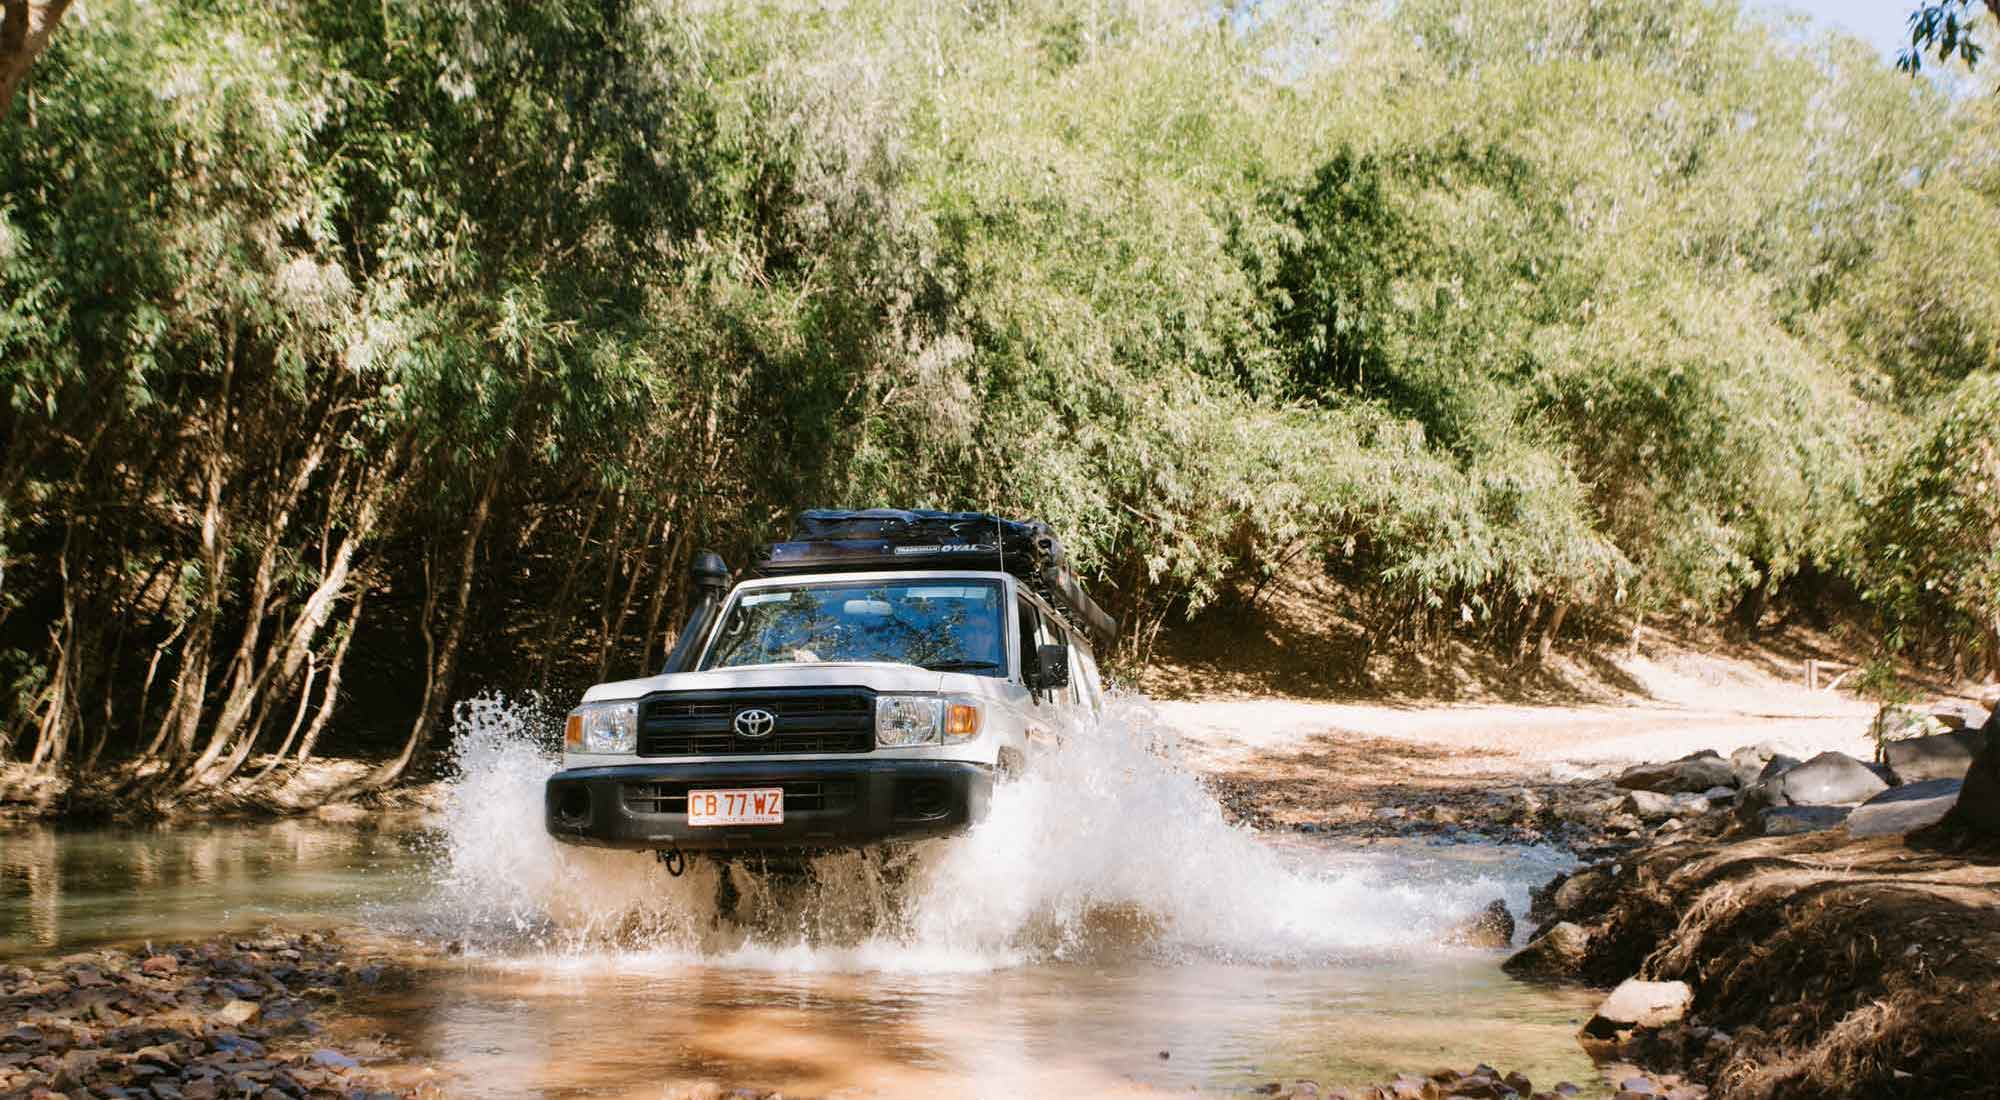 Britz Safari 4WD in water